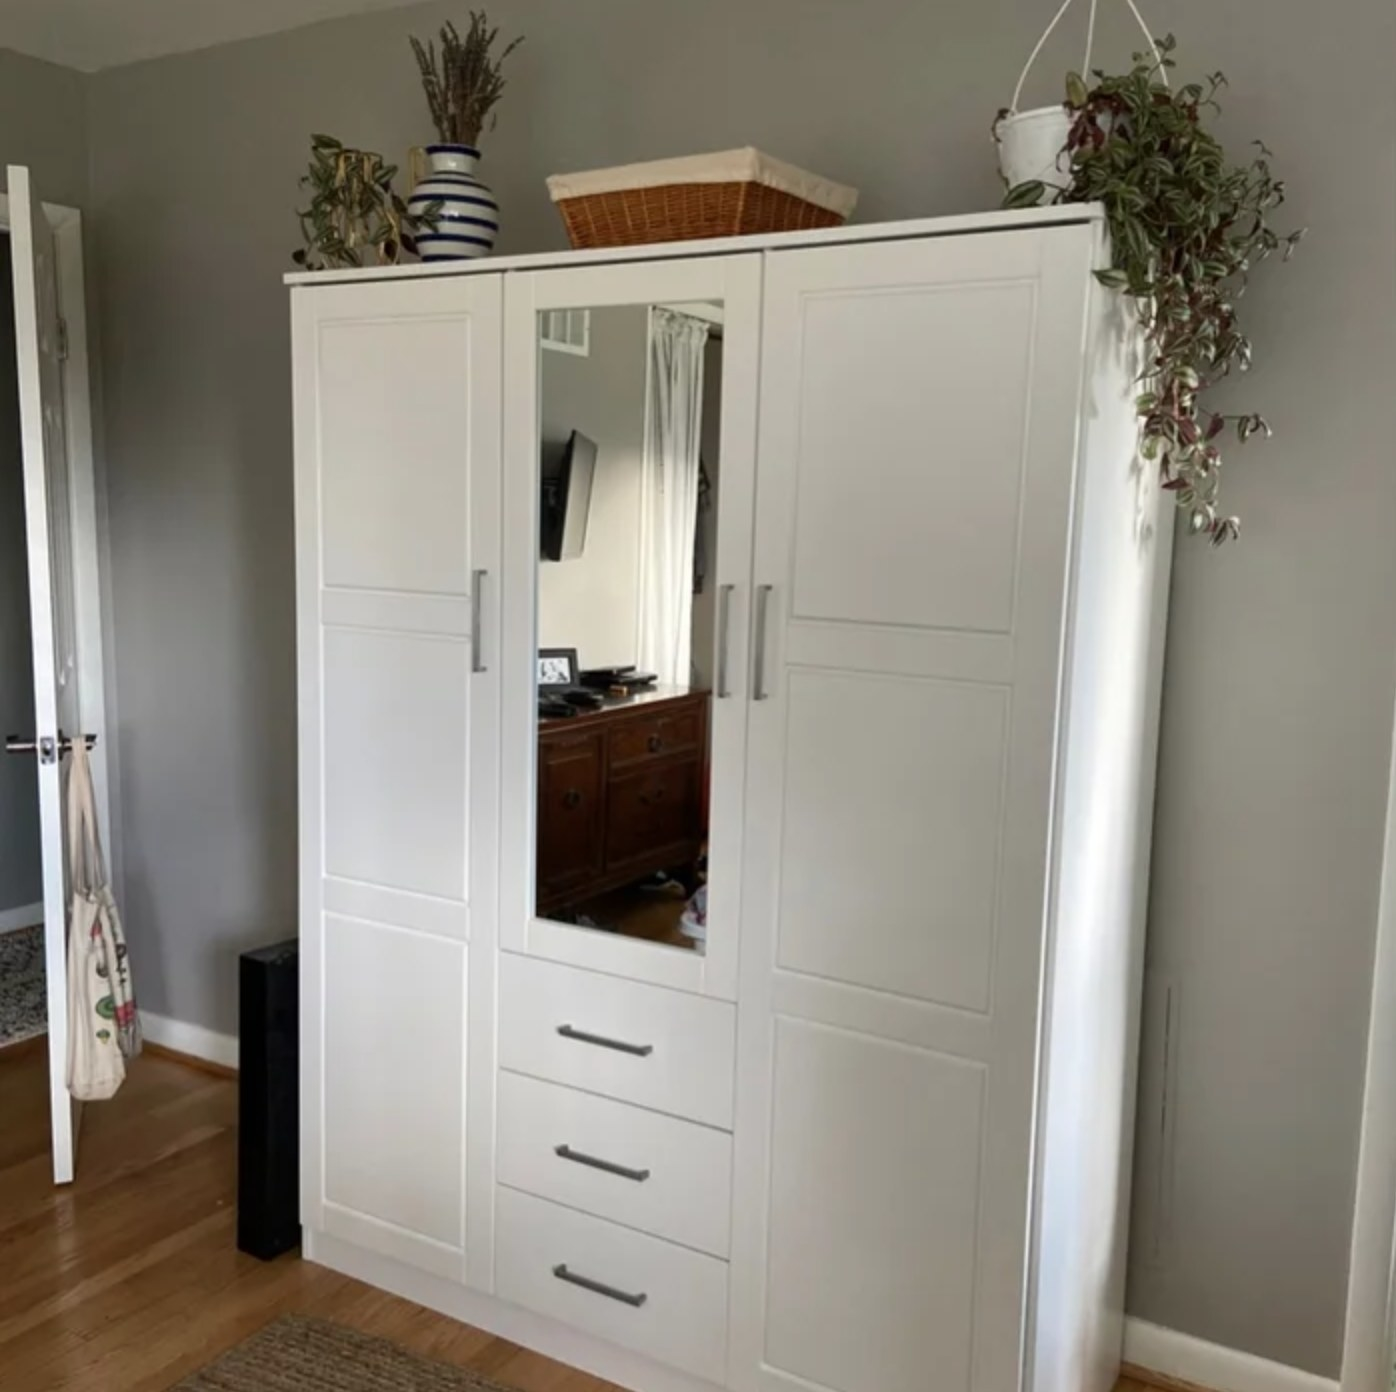 The armoire in white